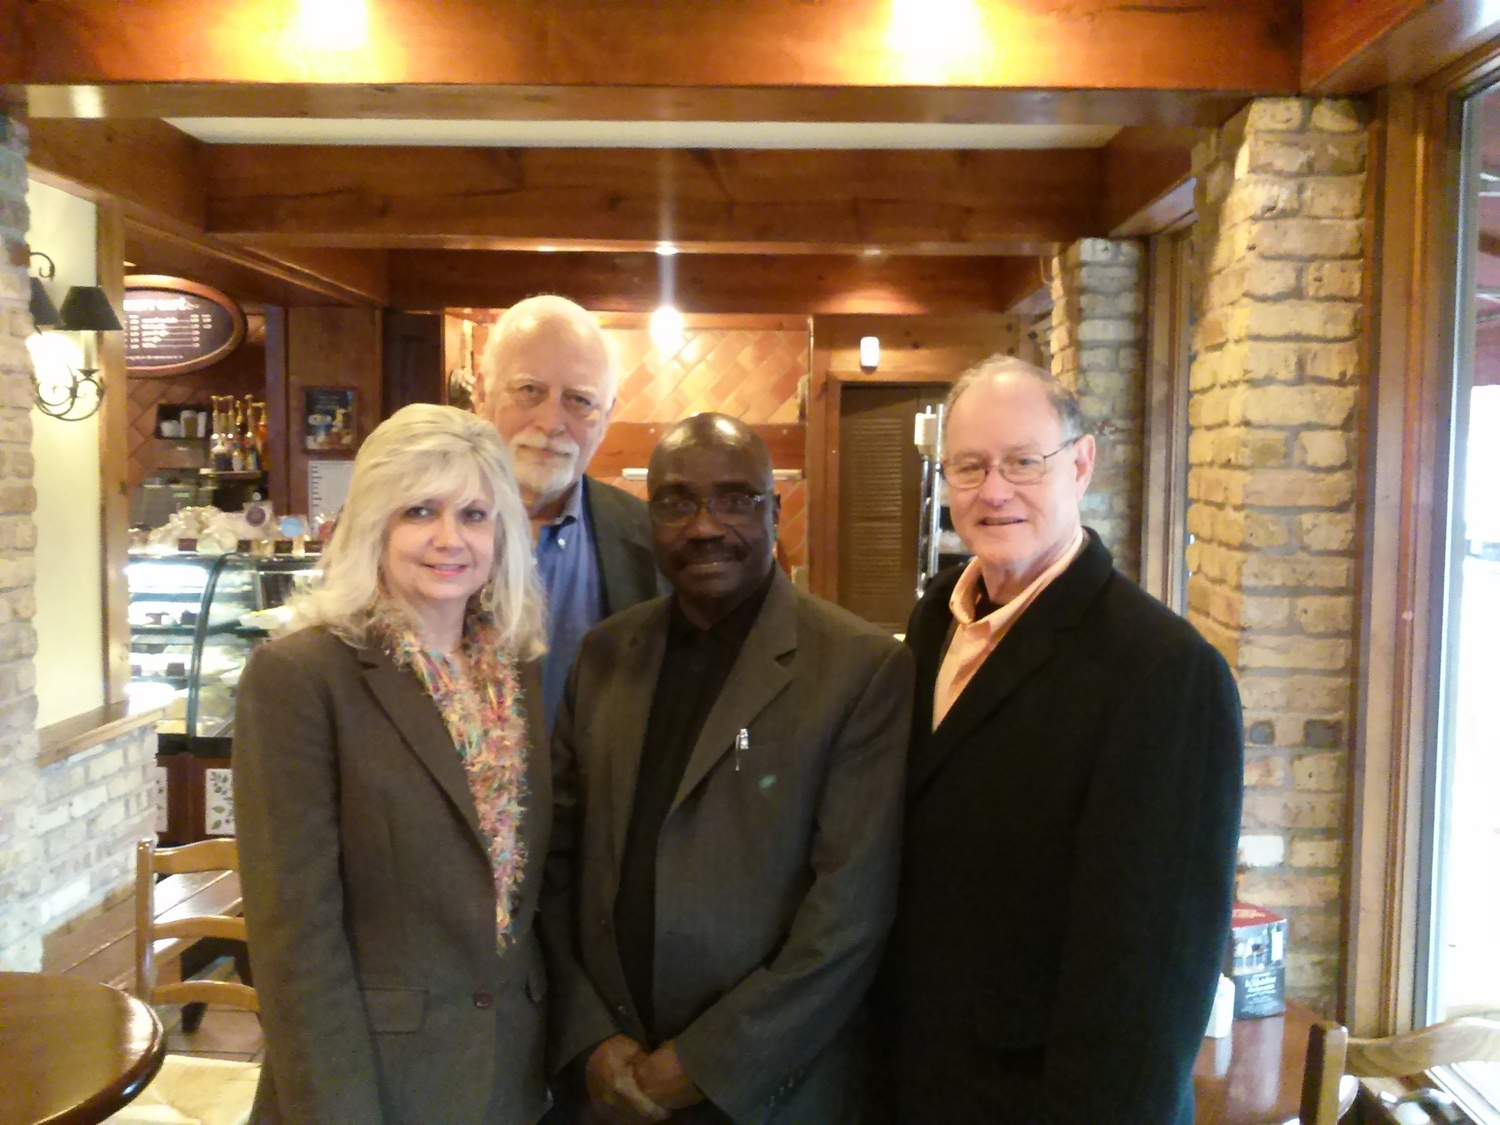 GIDE Executive Director and Kurt Wall (right), GIDE Board Member after a meeting on partnership with Advisors in Dallas, Texas, 2013